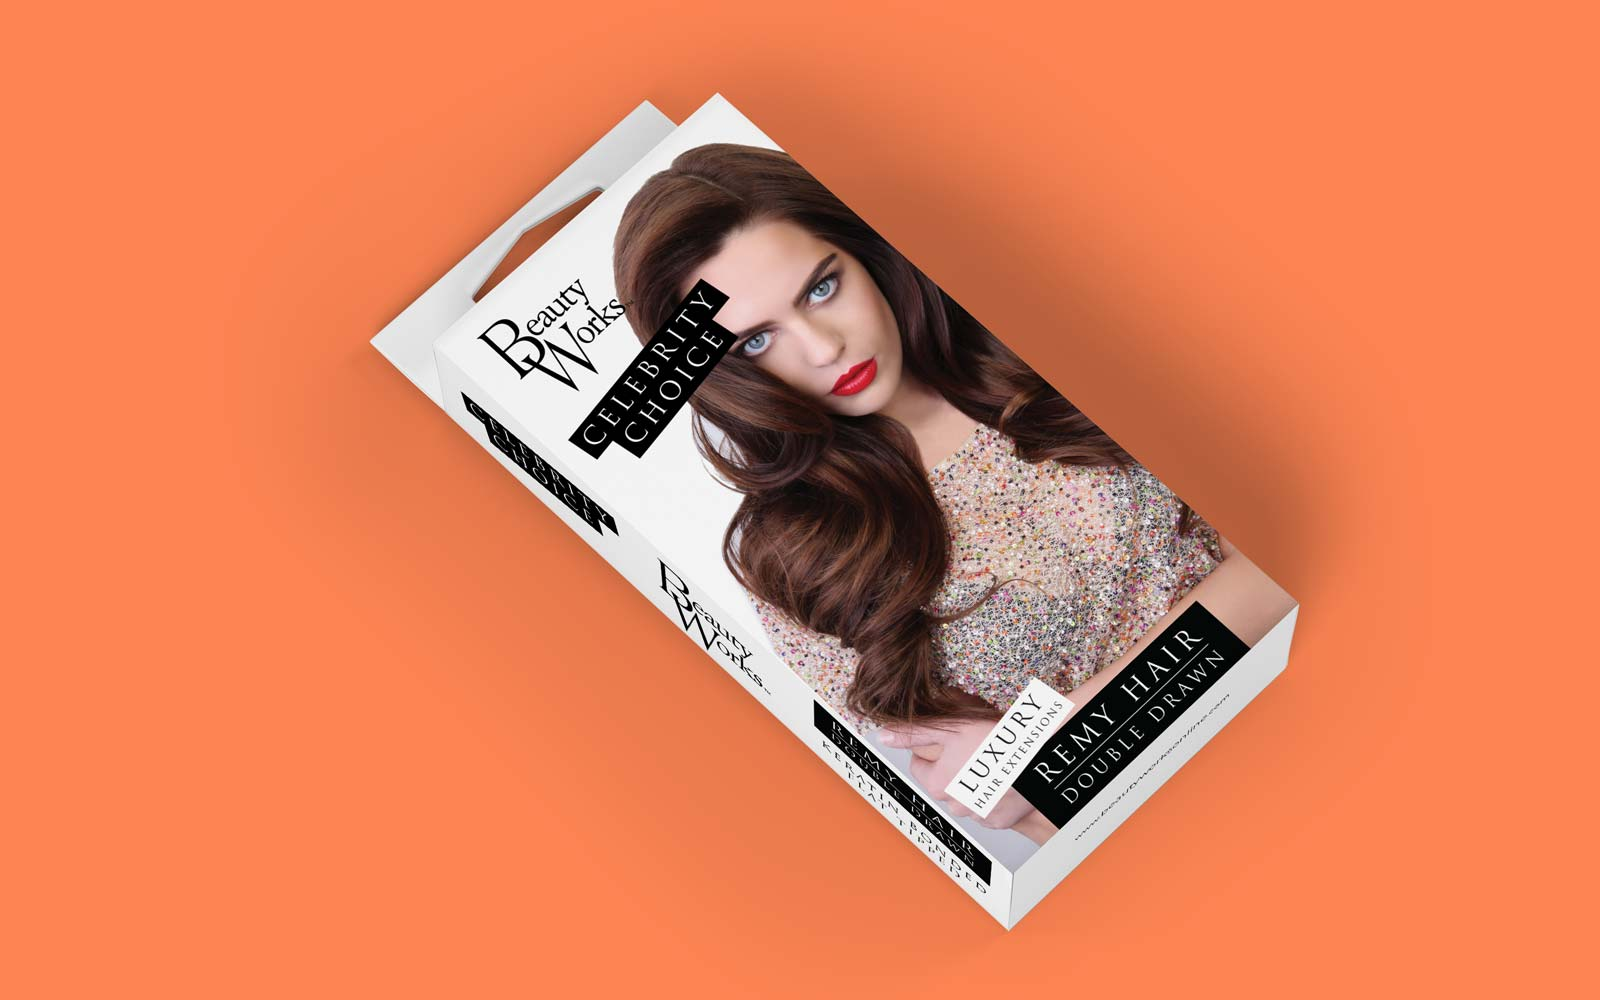 celebrity-choice-hair-extensions-box-luxury-packaging-design